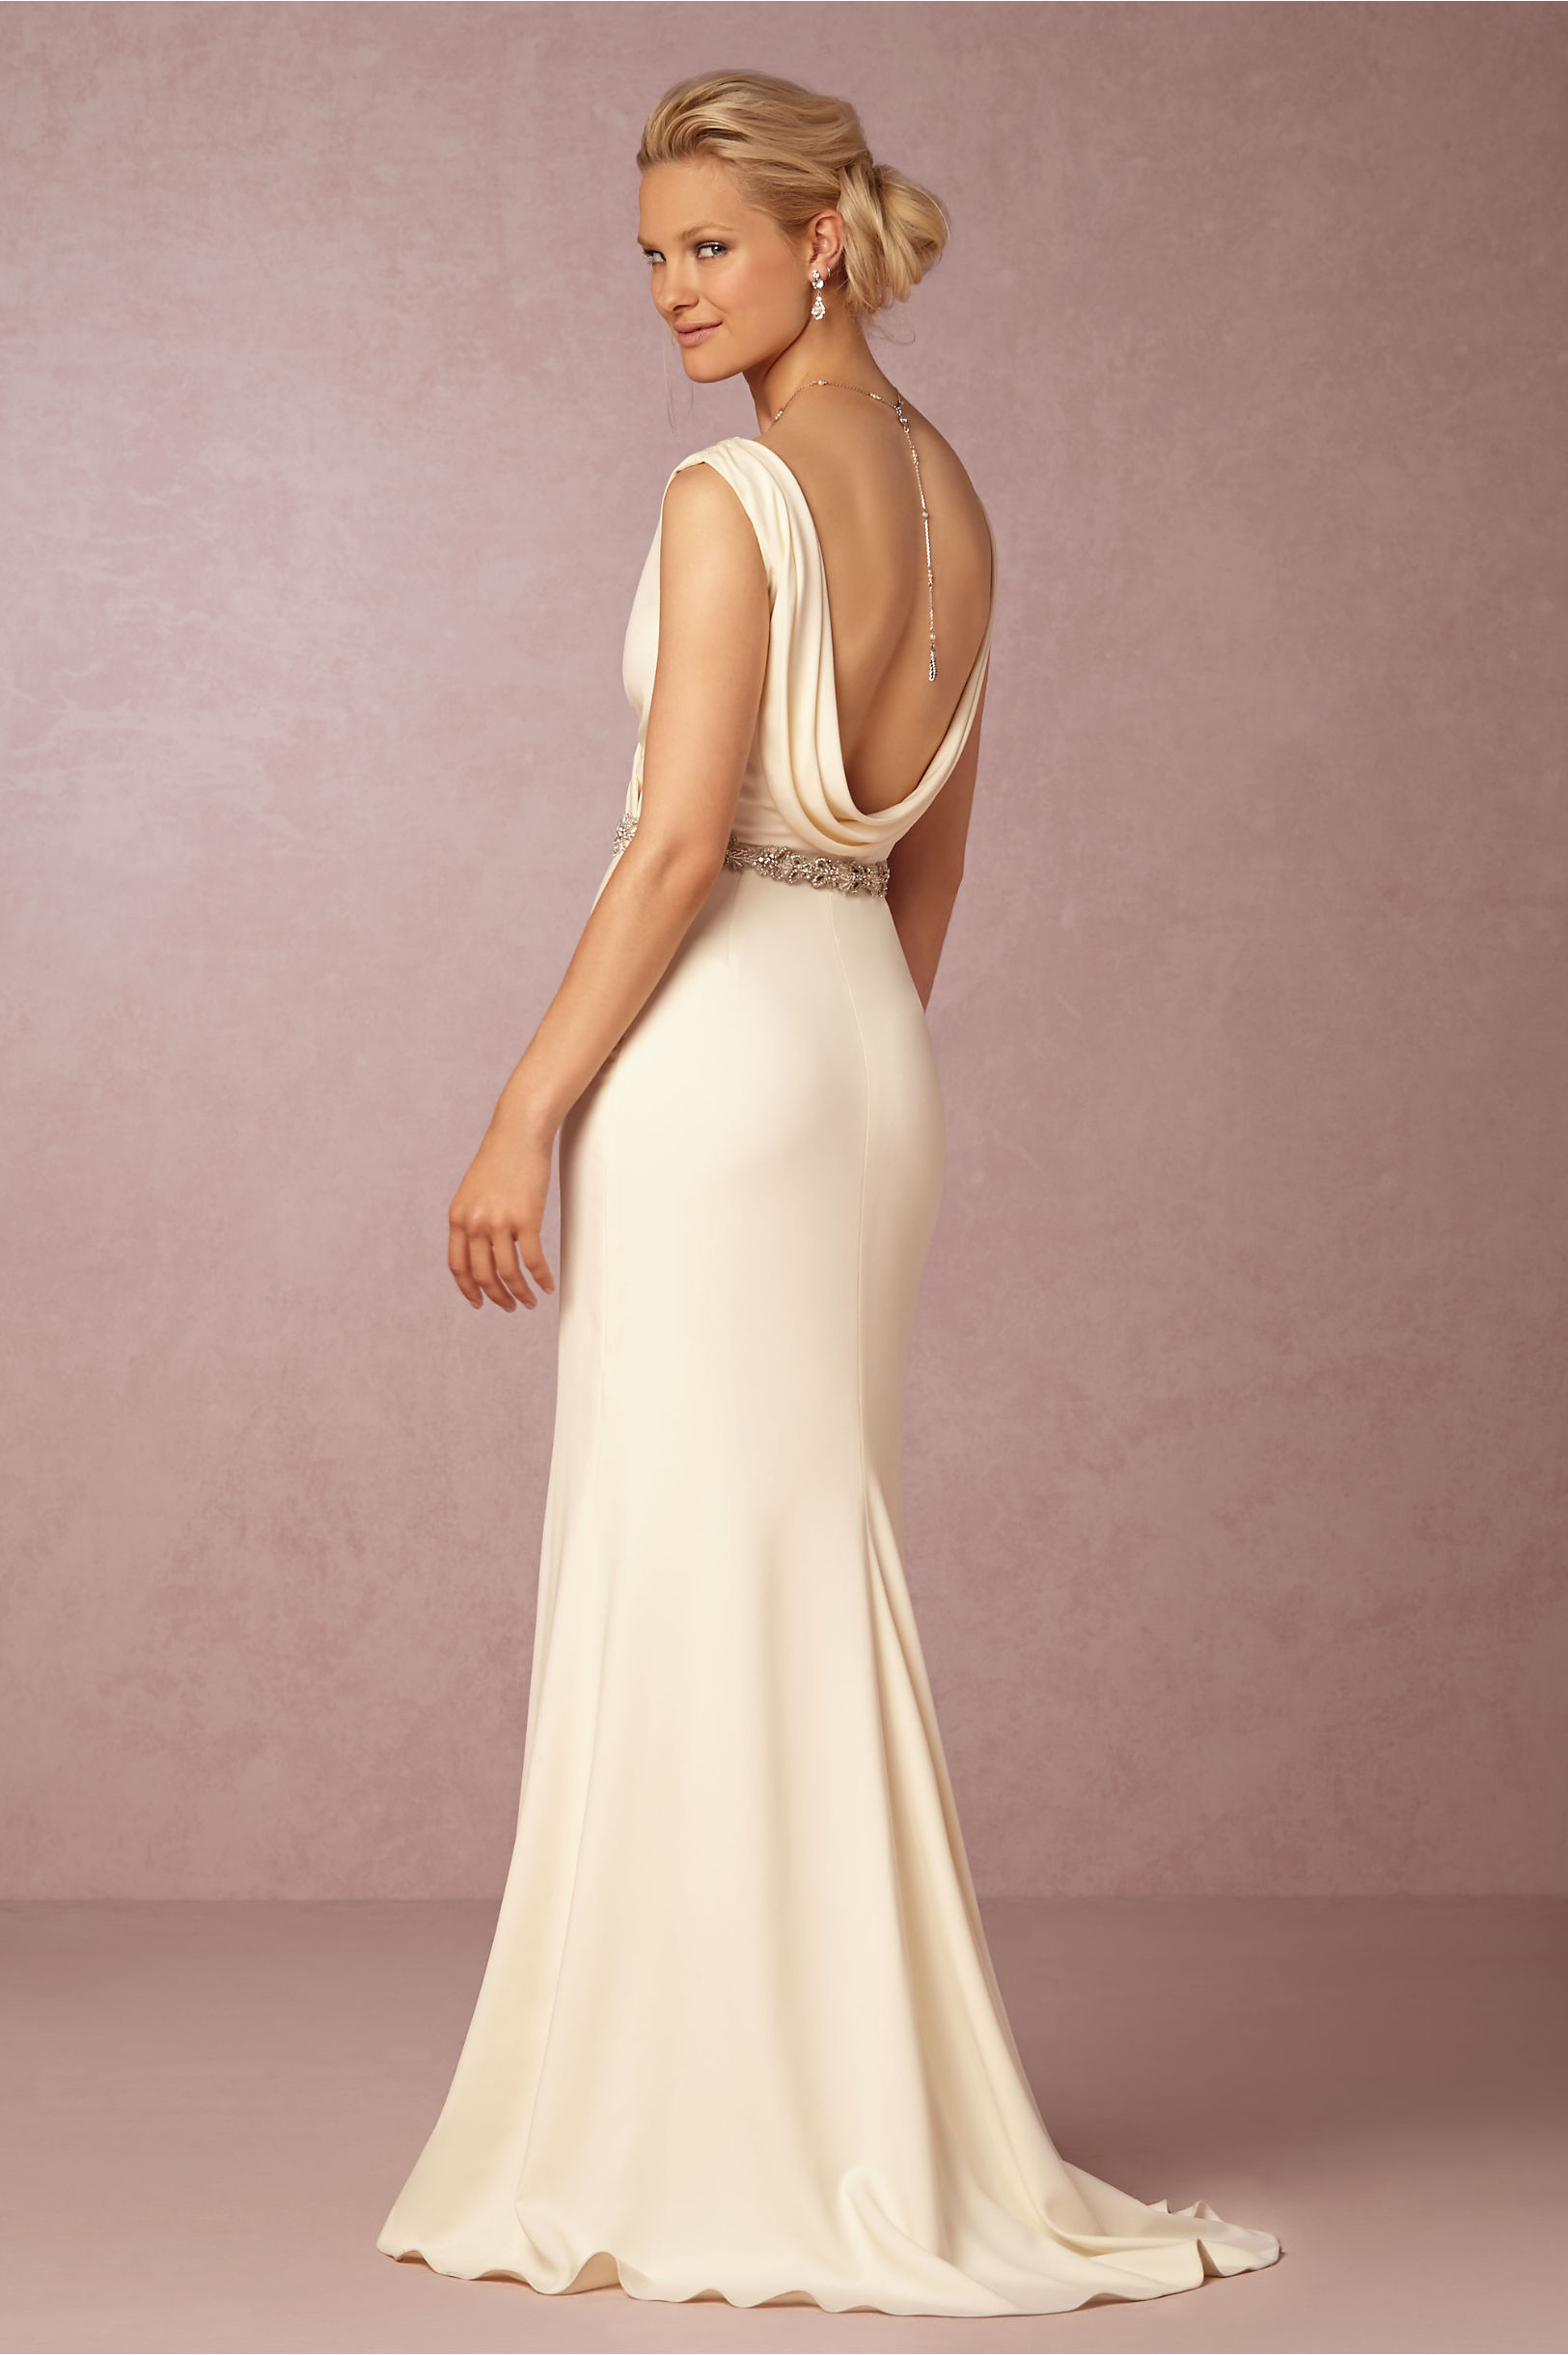 Livia gown in sale bhldn badgley mischka cream livia gown bhldn ombrellifo Image collections